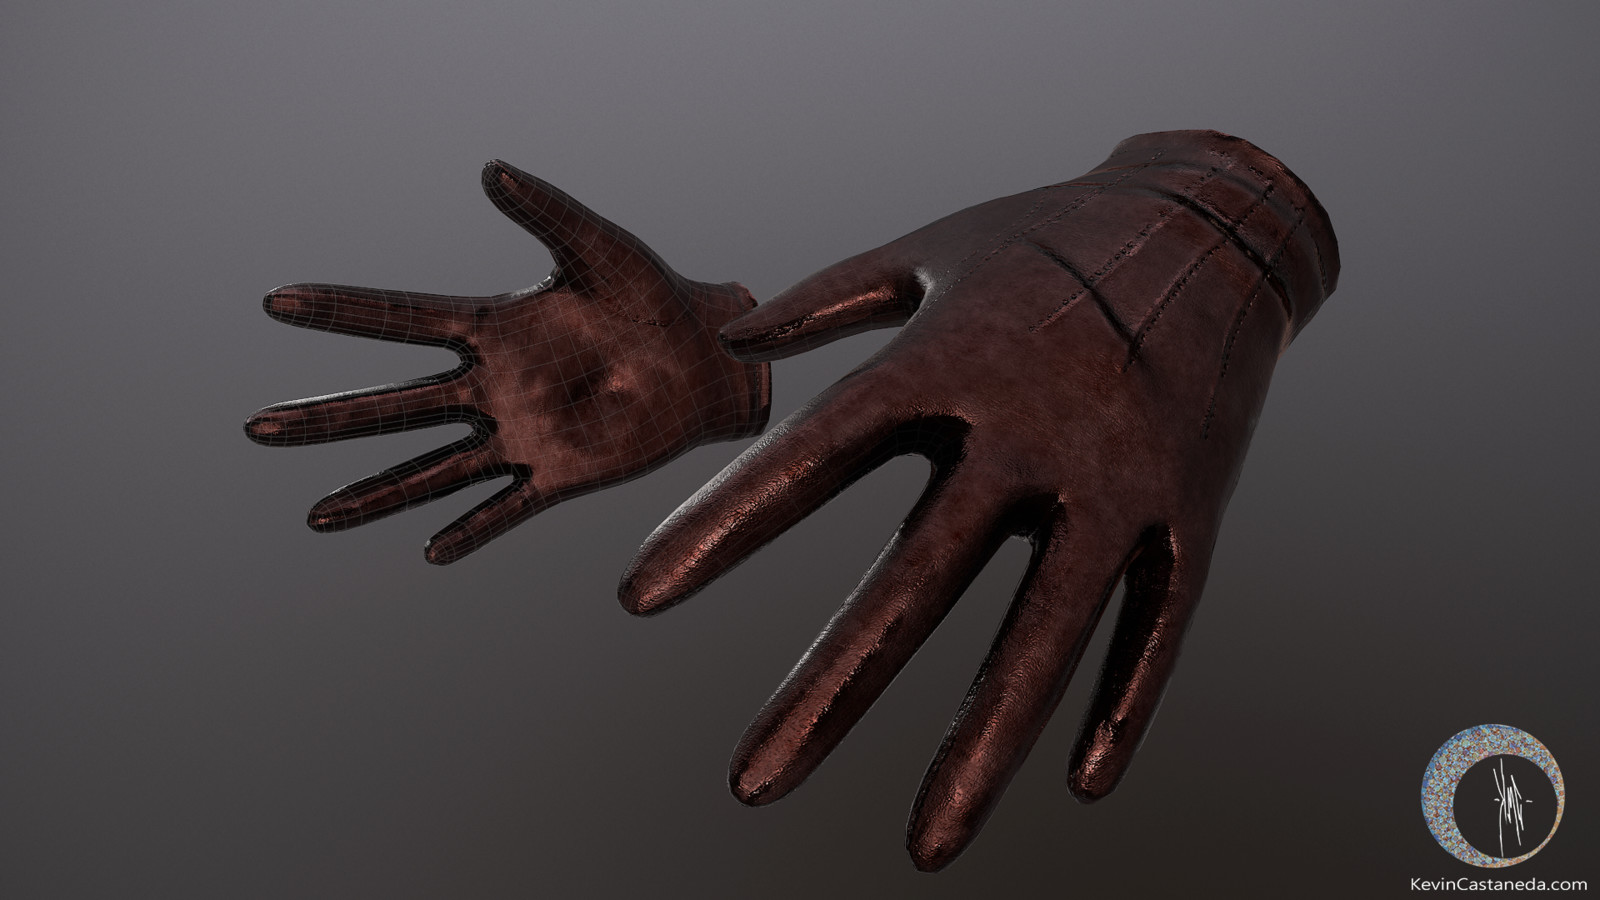 Hands for VR. Cloth was done in Zbrush. Modeled in Maya. Textured in Substance Painter.